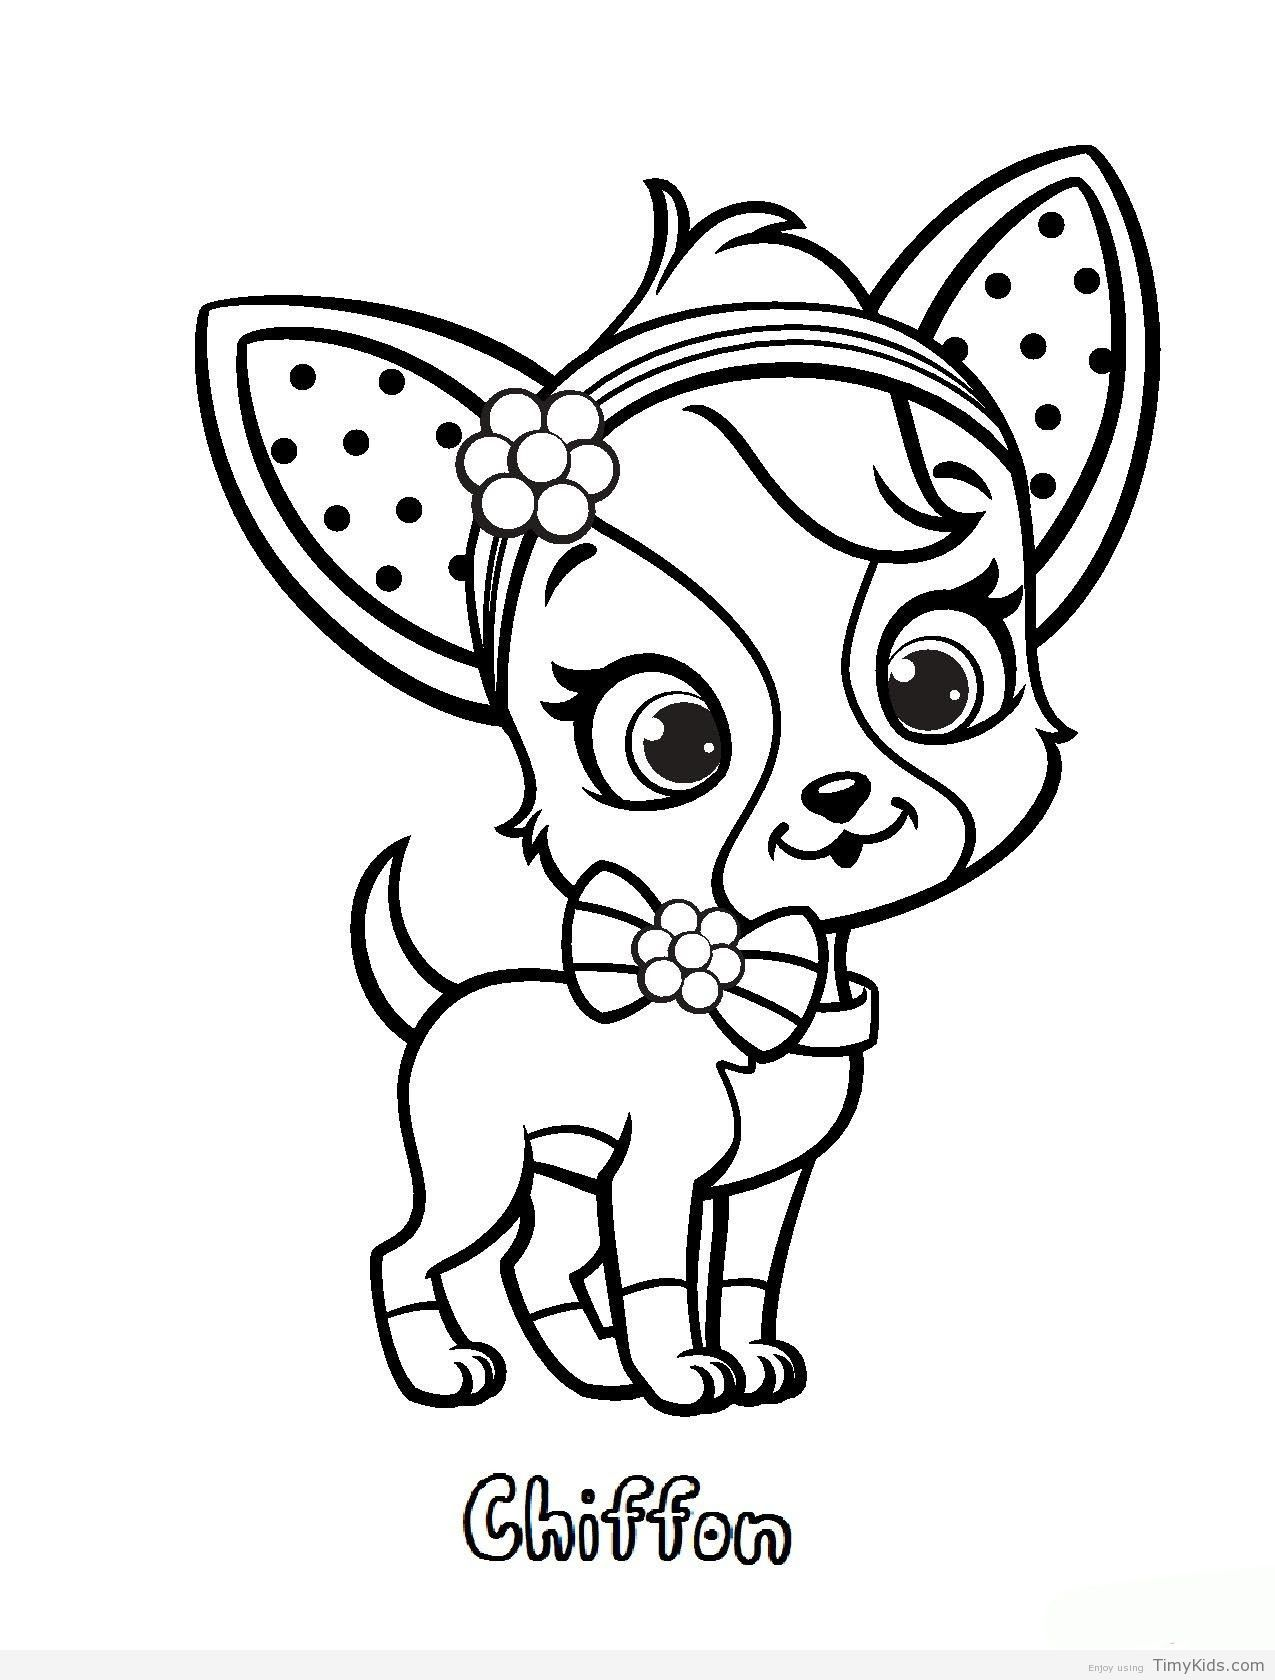 http timykids com strawberry shortcake pets coloring pages html